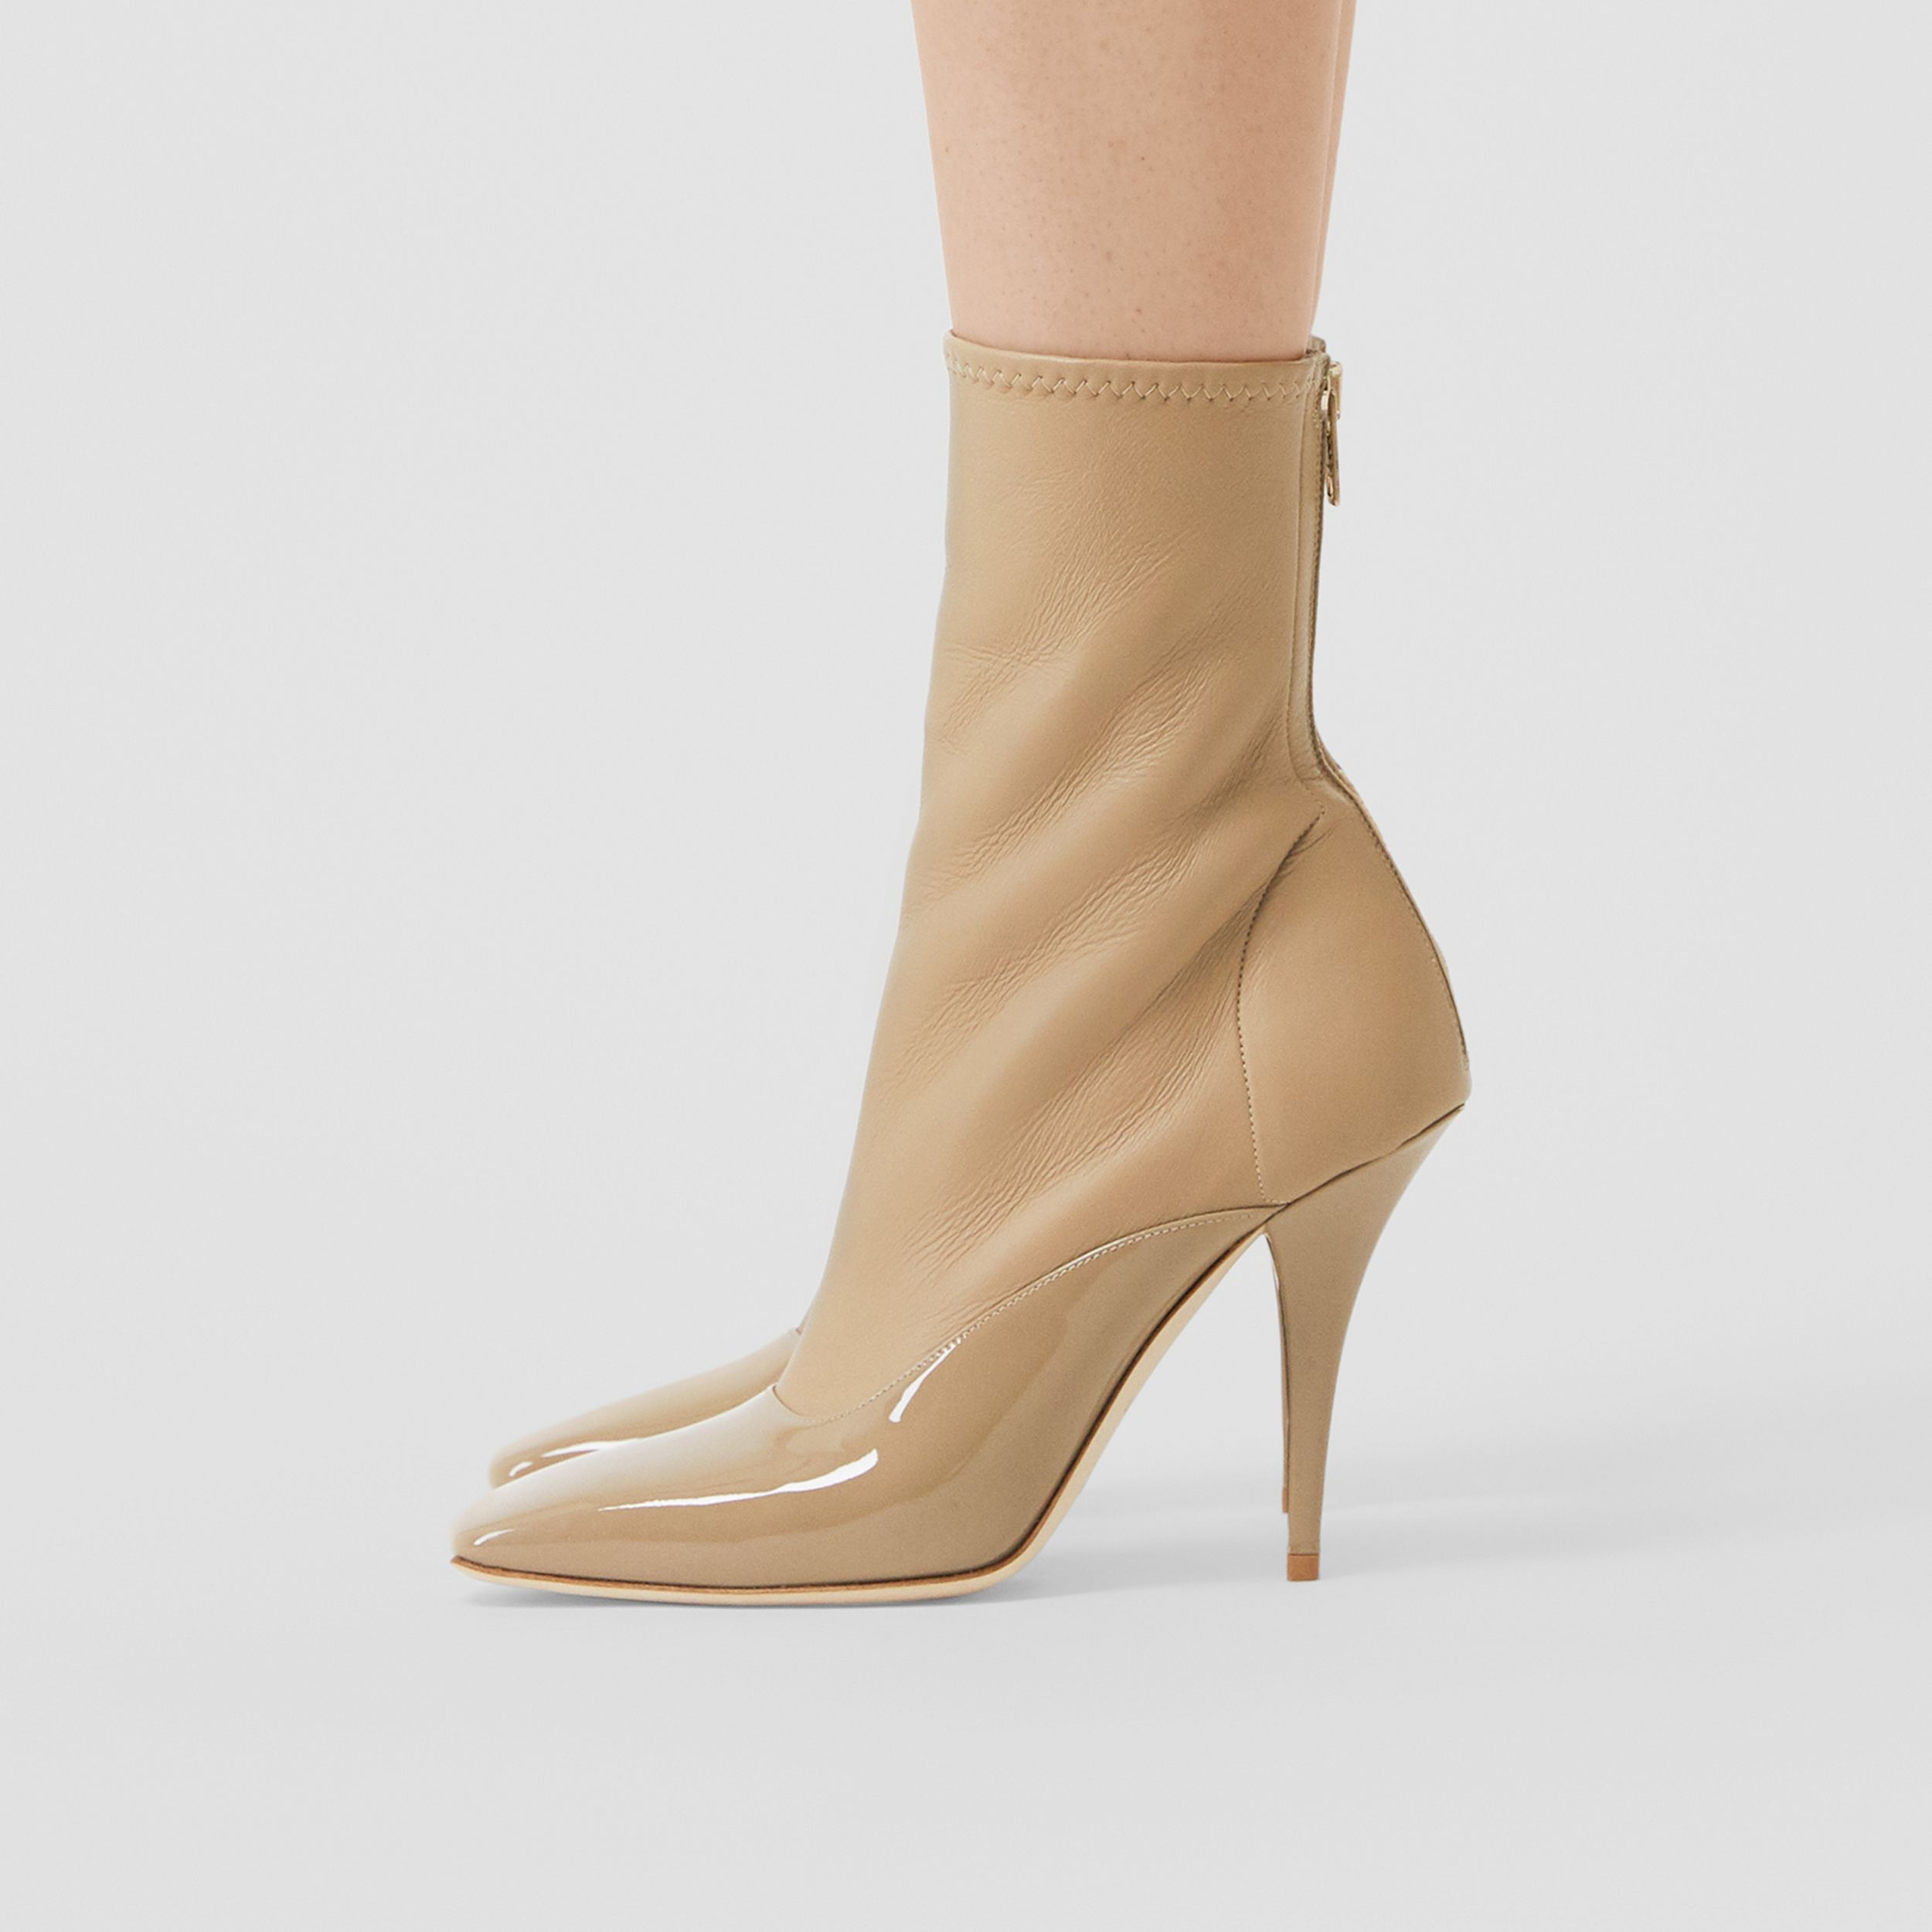 Lambskin and Patent Leather Ankle Boots in Dark Honey | Burberry - 3